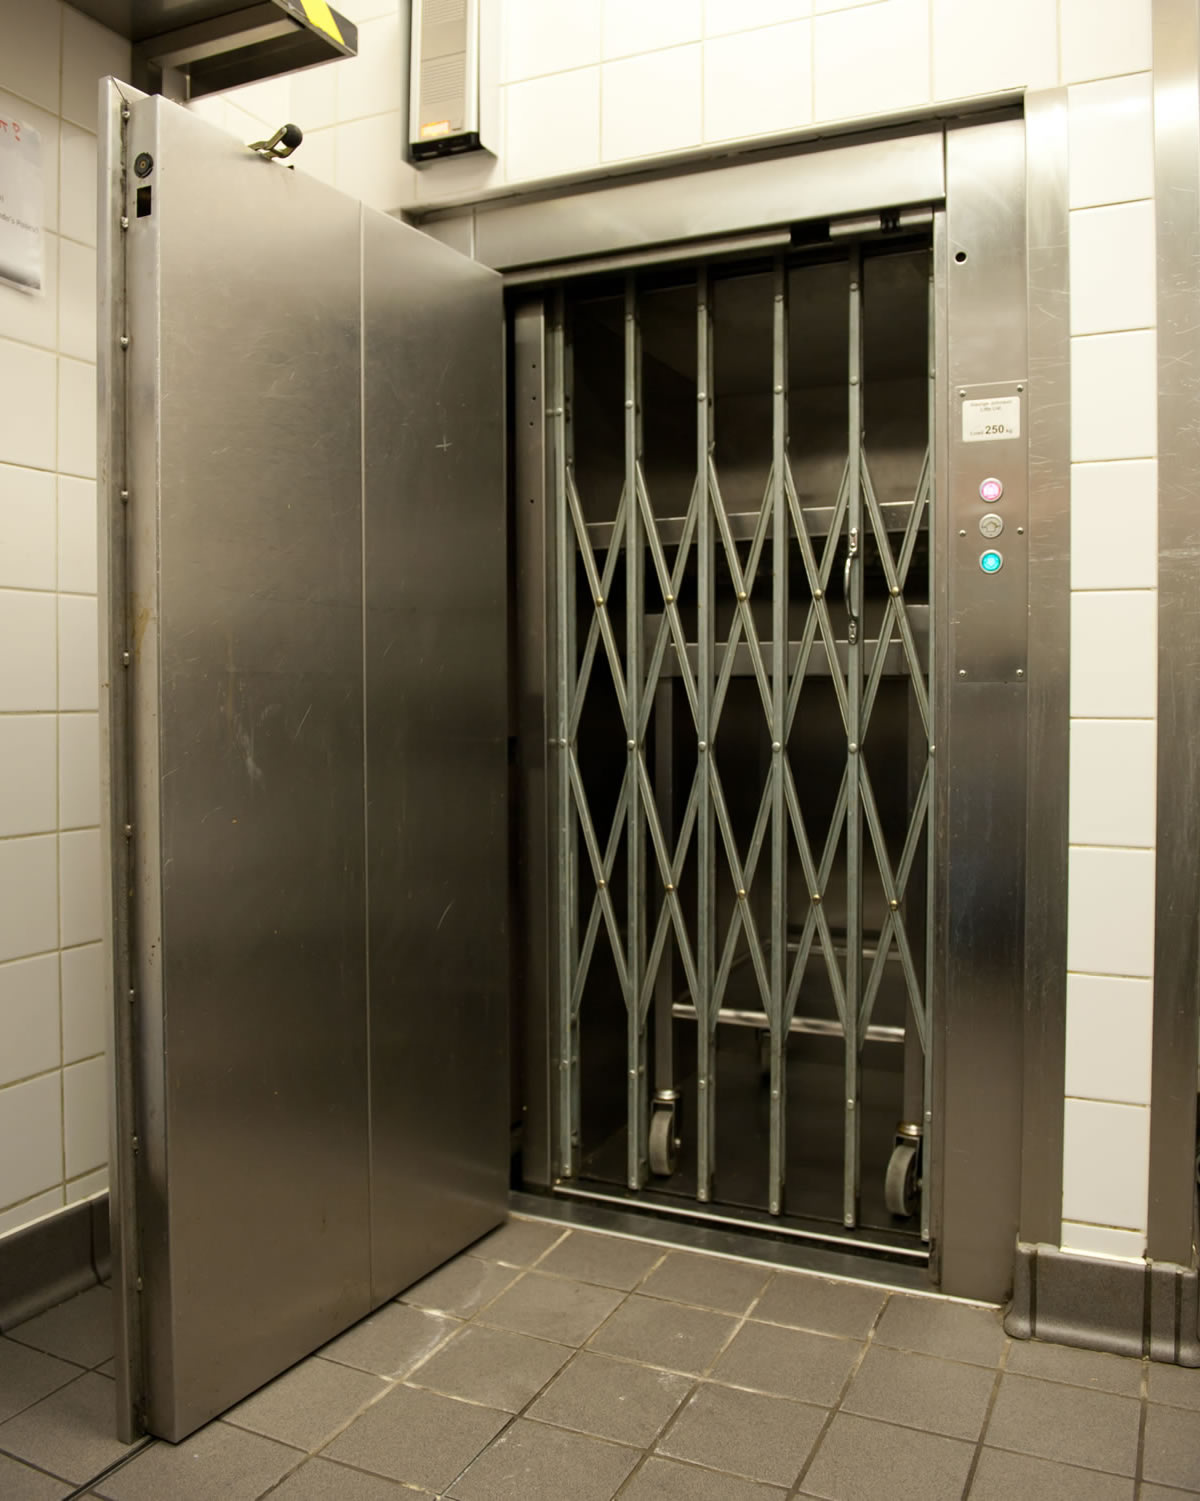 A full height hinged door at each entrance ensures full access to both sections simultaneously. A picket gate is fitted to the lift car entrance to prevent any goods from being misloaded and ensures the goods do not fall forward out of the car whilst the lift is in travel.